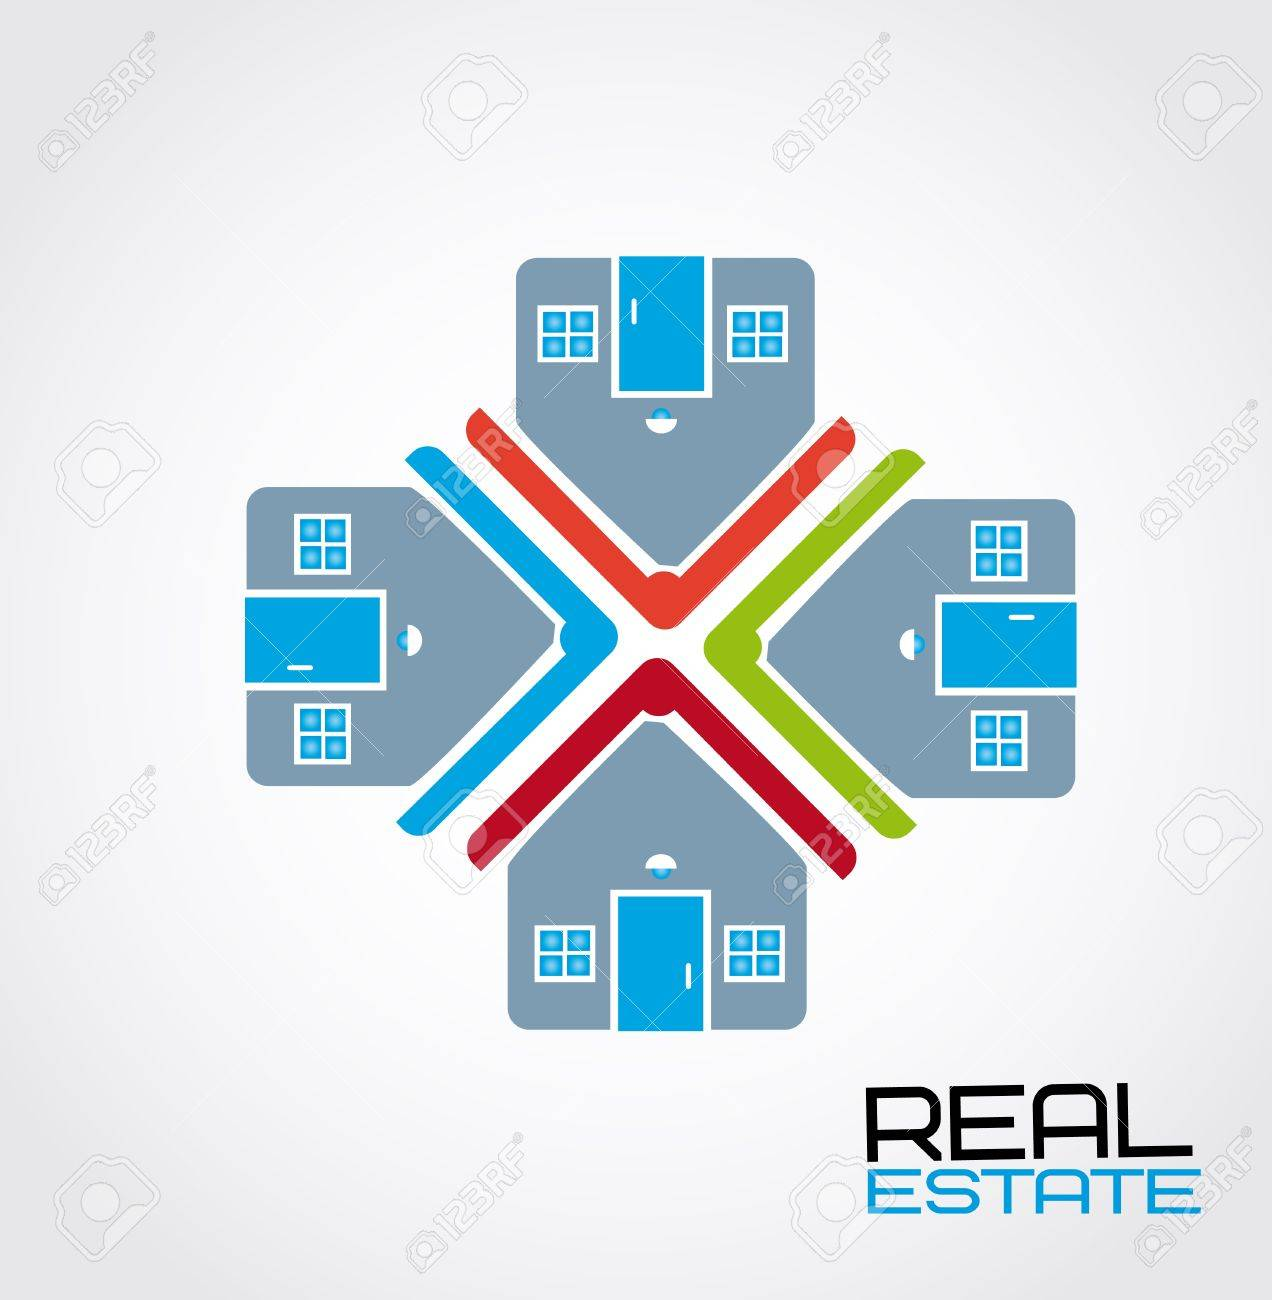 real estate design over white background vector illustration Stock Vector - 20500221